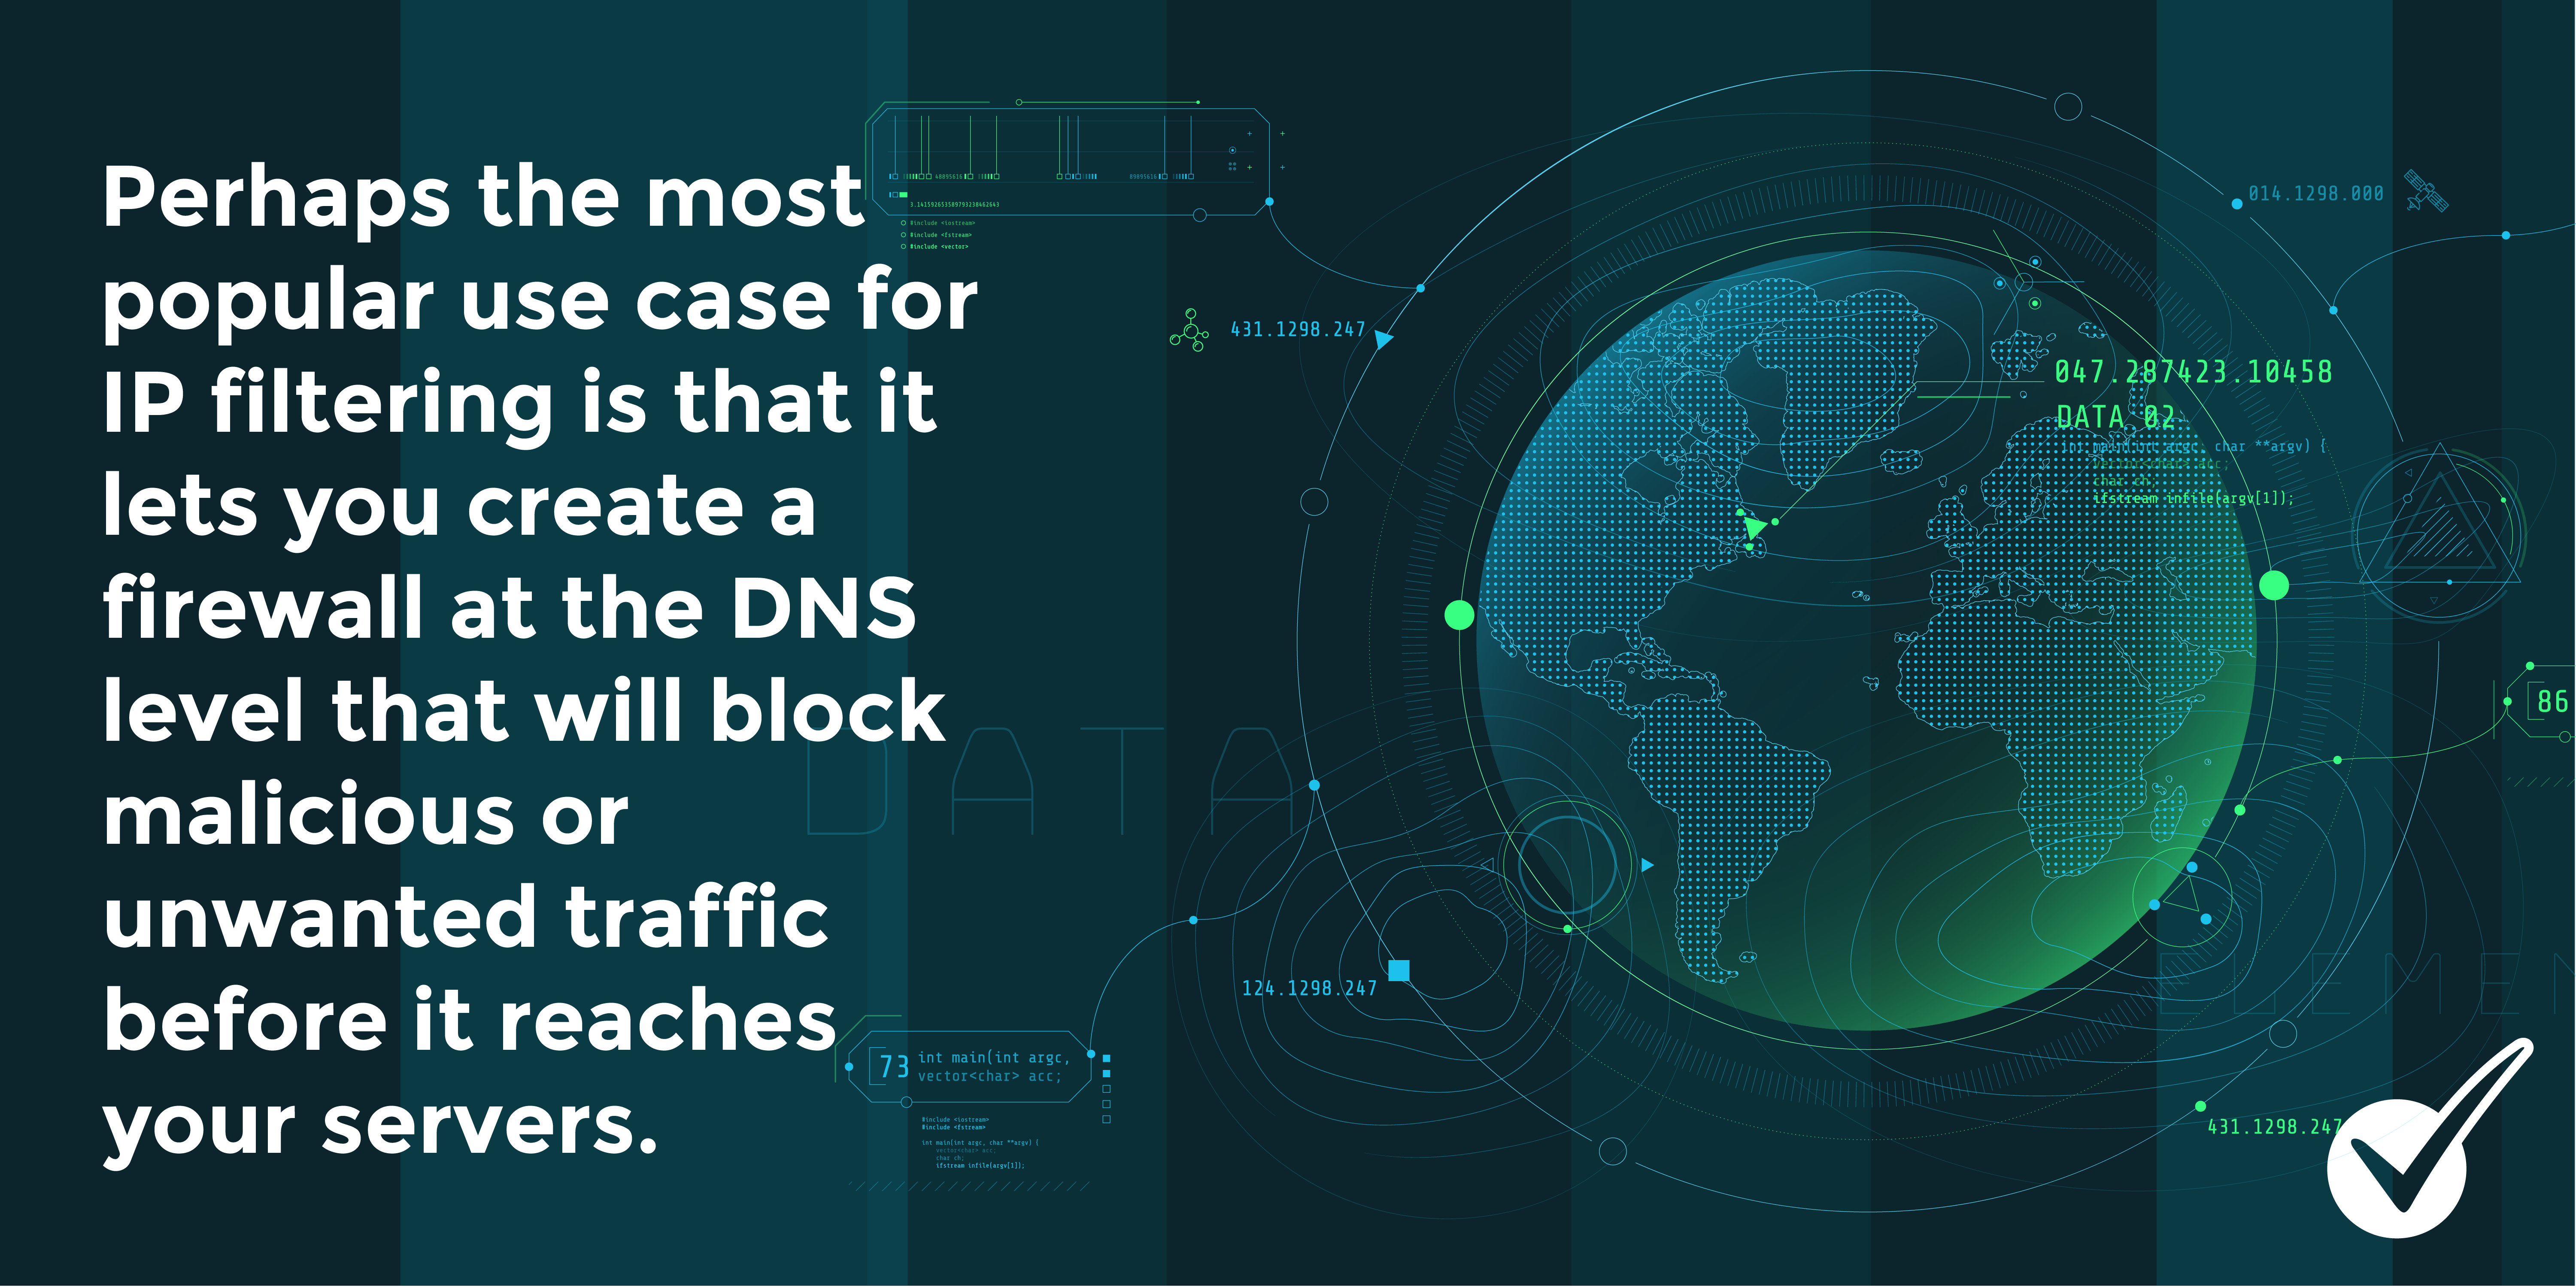 DNS IP Filter Tip - Create firewall at DNS Level to block malicious traffic before it reaches servers